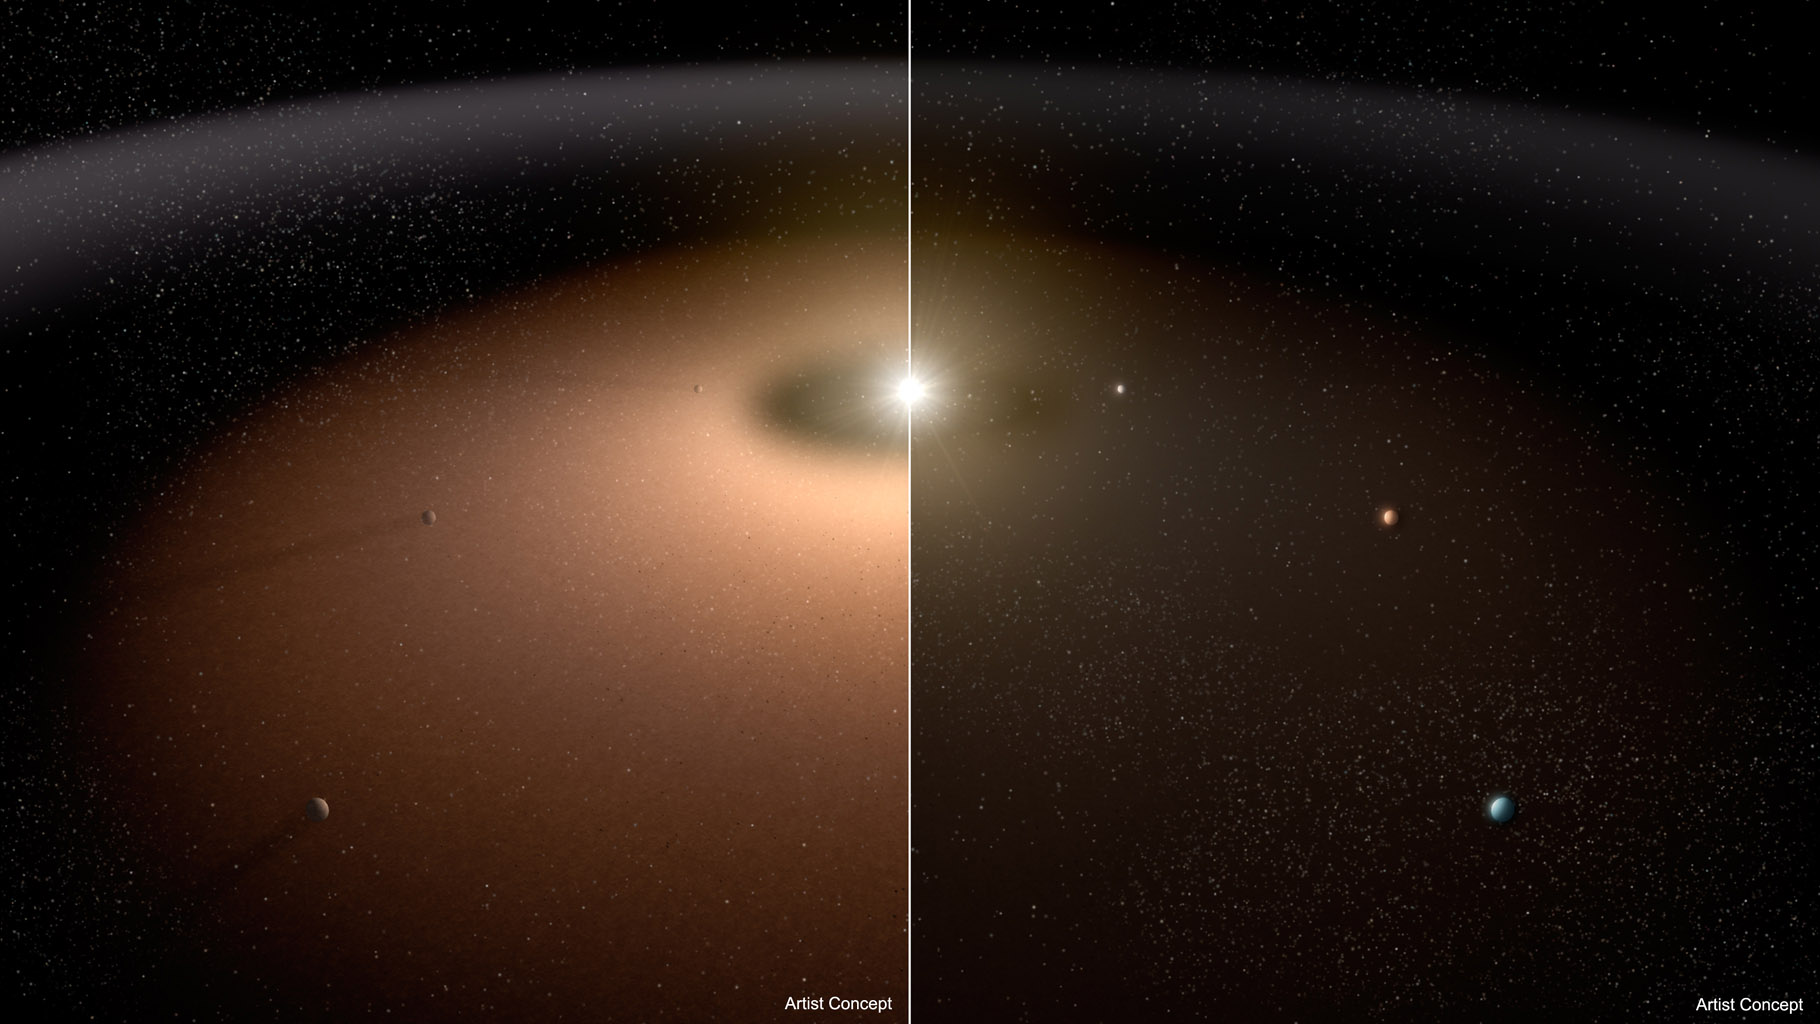 A dusty planetary system (left) is compared to another system with little dust in this artist's concept. Dust can make it difficult for telescopes to image planets because light from the dust can outshine that of the planets.